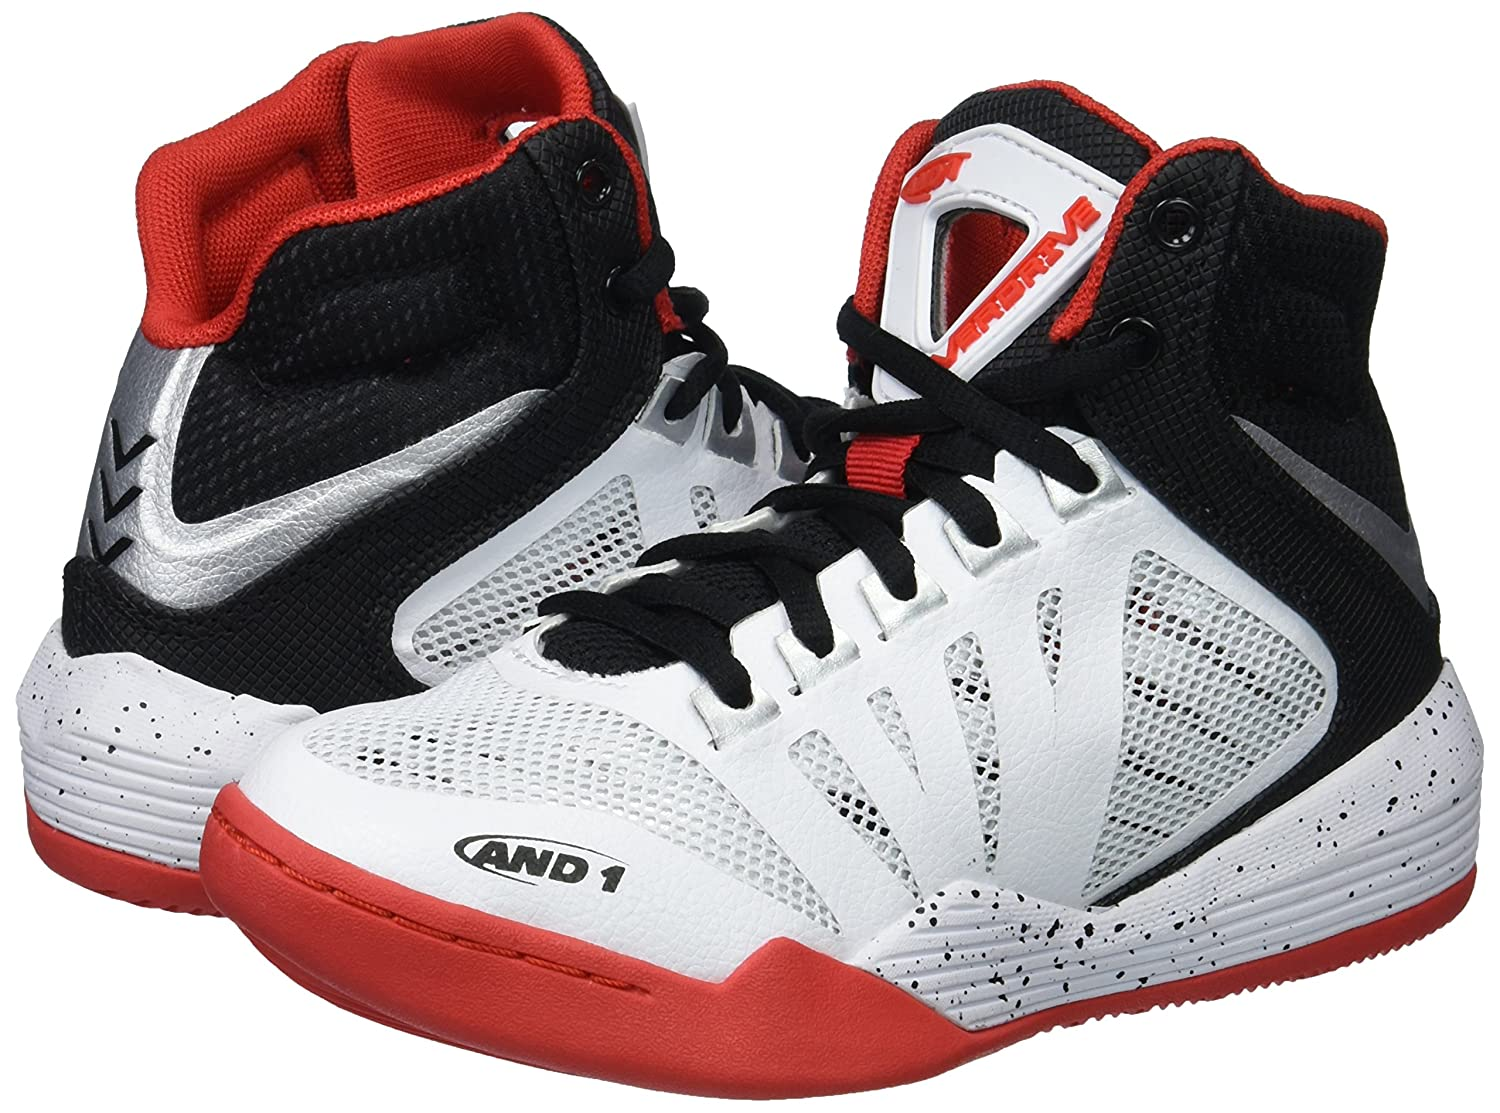 AND 1 Kids Overdrive Sneaker